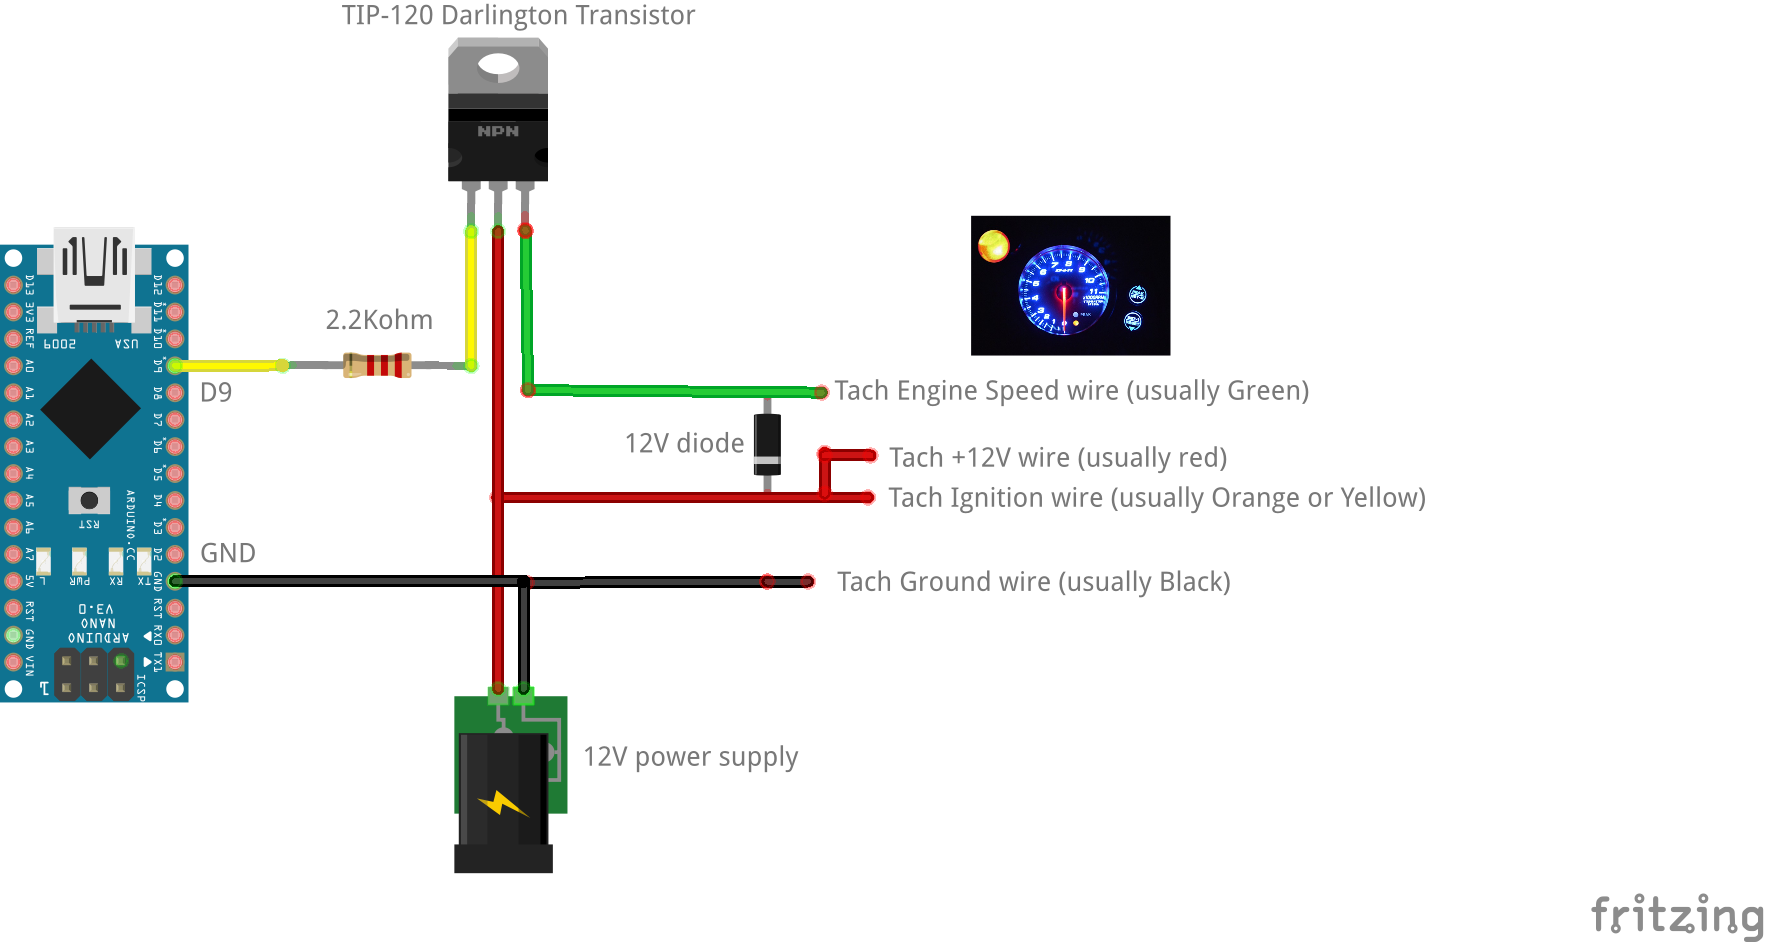 Relay Module Wiring Arduino Nice Place To Get Diagram 8 After Market Tach Support U00b7 Zegreatclan Simhub 4 Connections